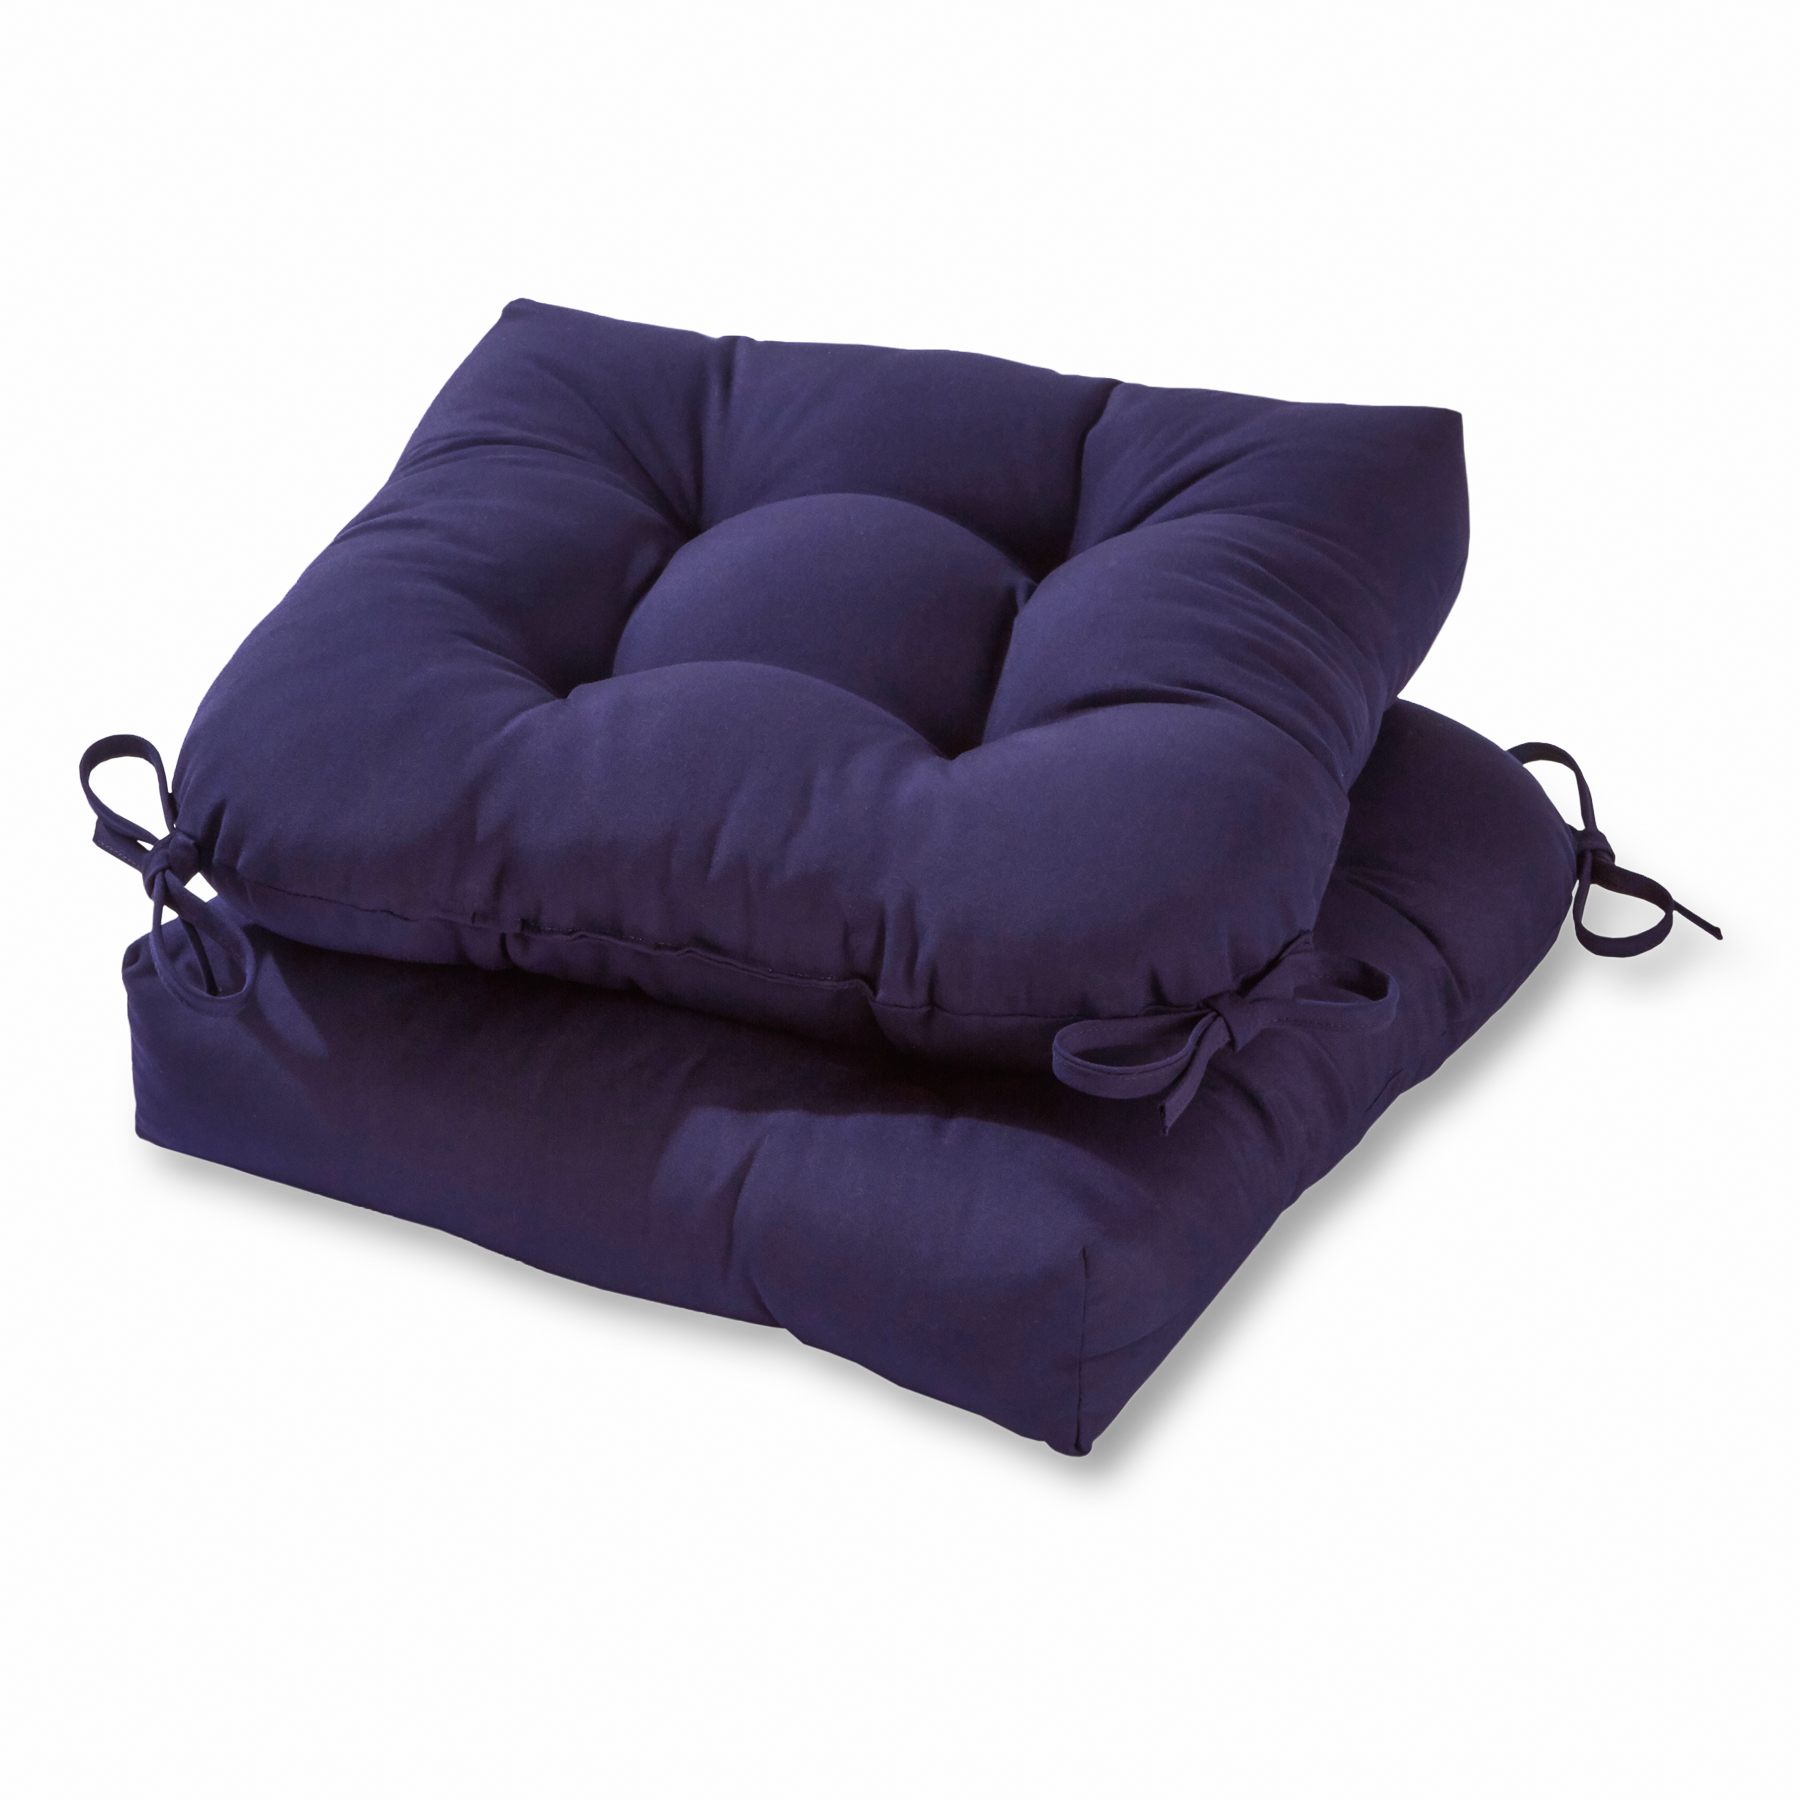 Solid Color 20 in. Plush Outdoor Chair Cushion, Set of 2